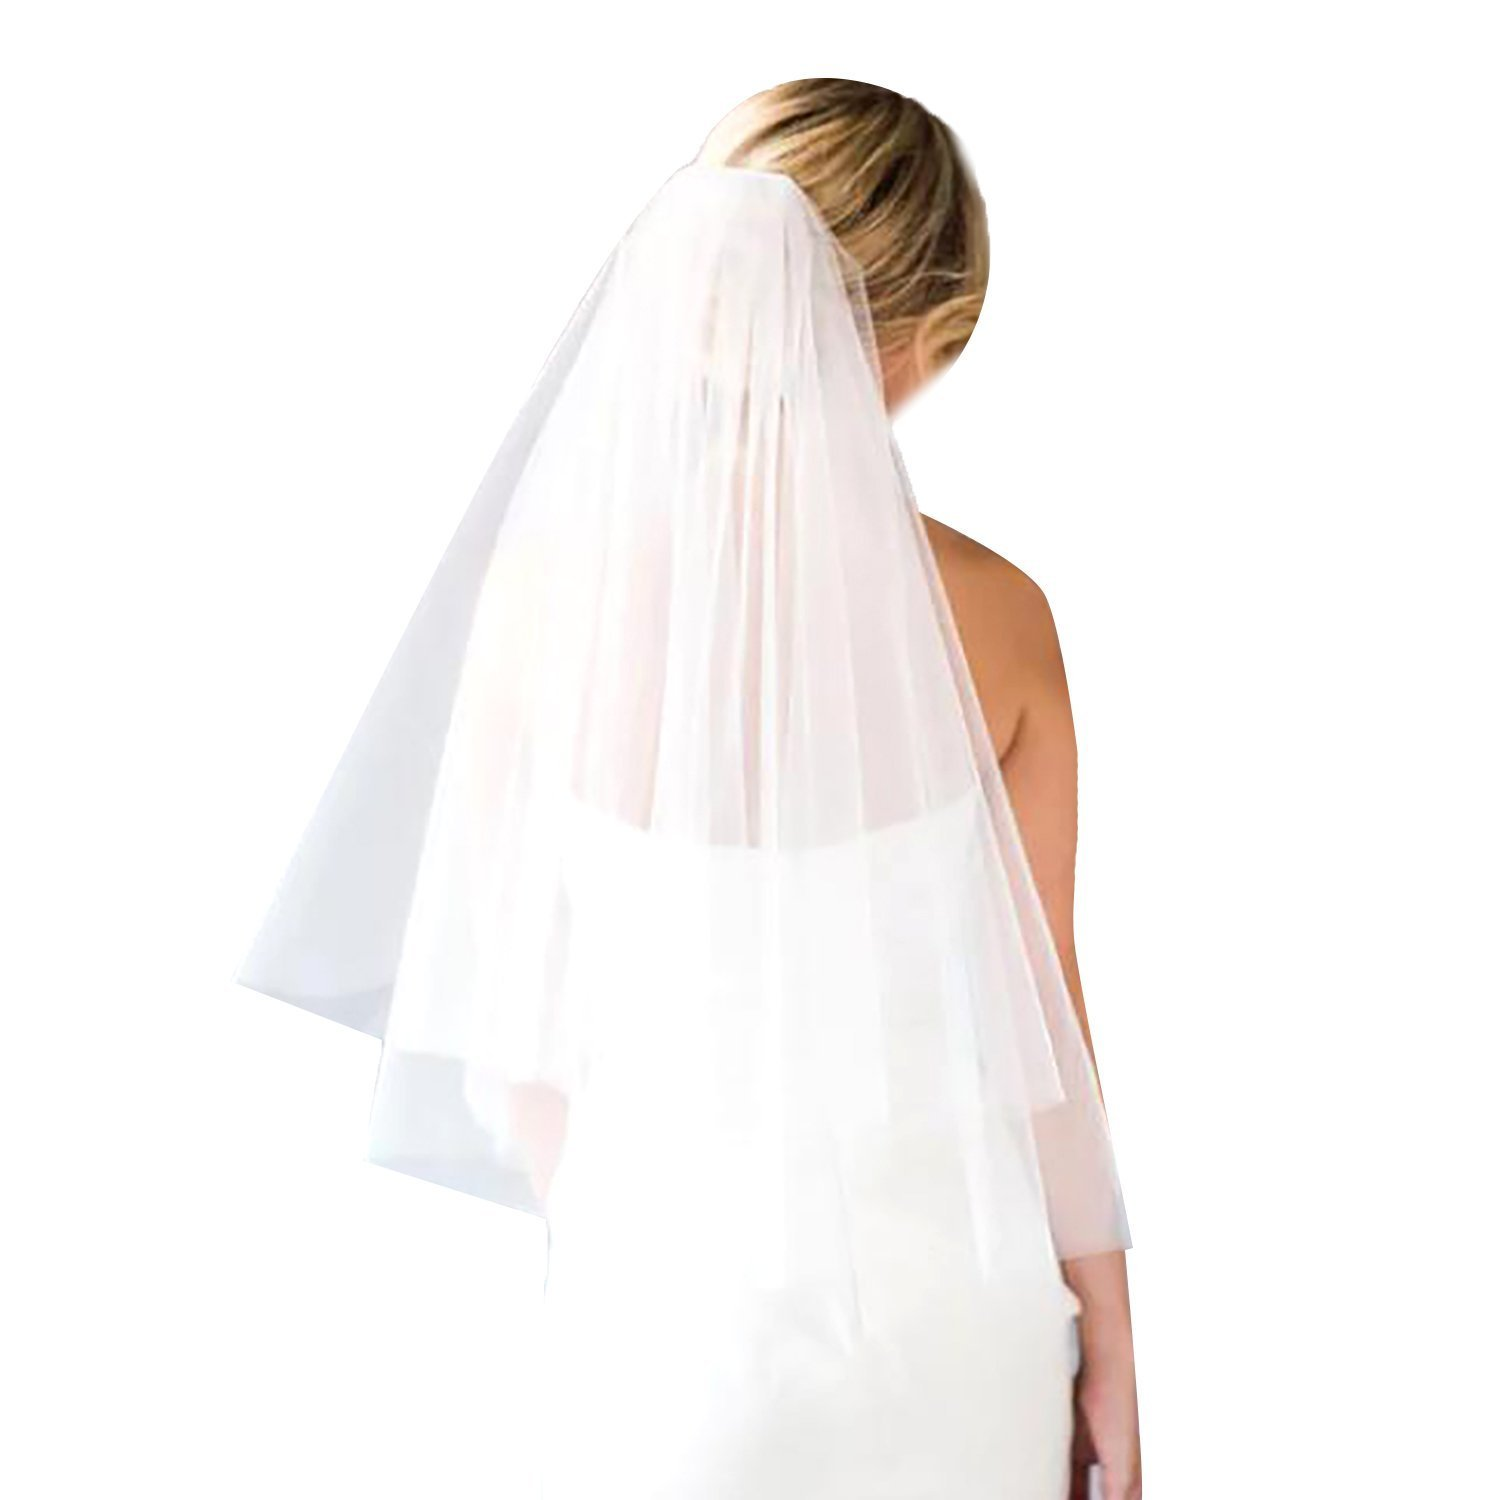 2 Tier Wedding Veil with Comb White Ivory Short Cut Edge Elbow Length (Ivory)